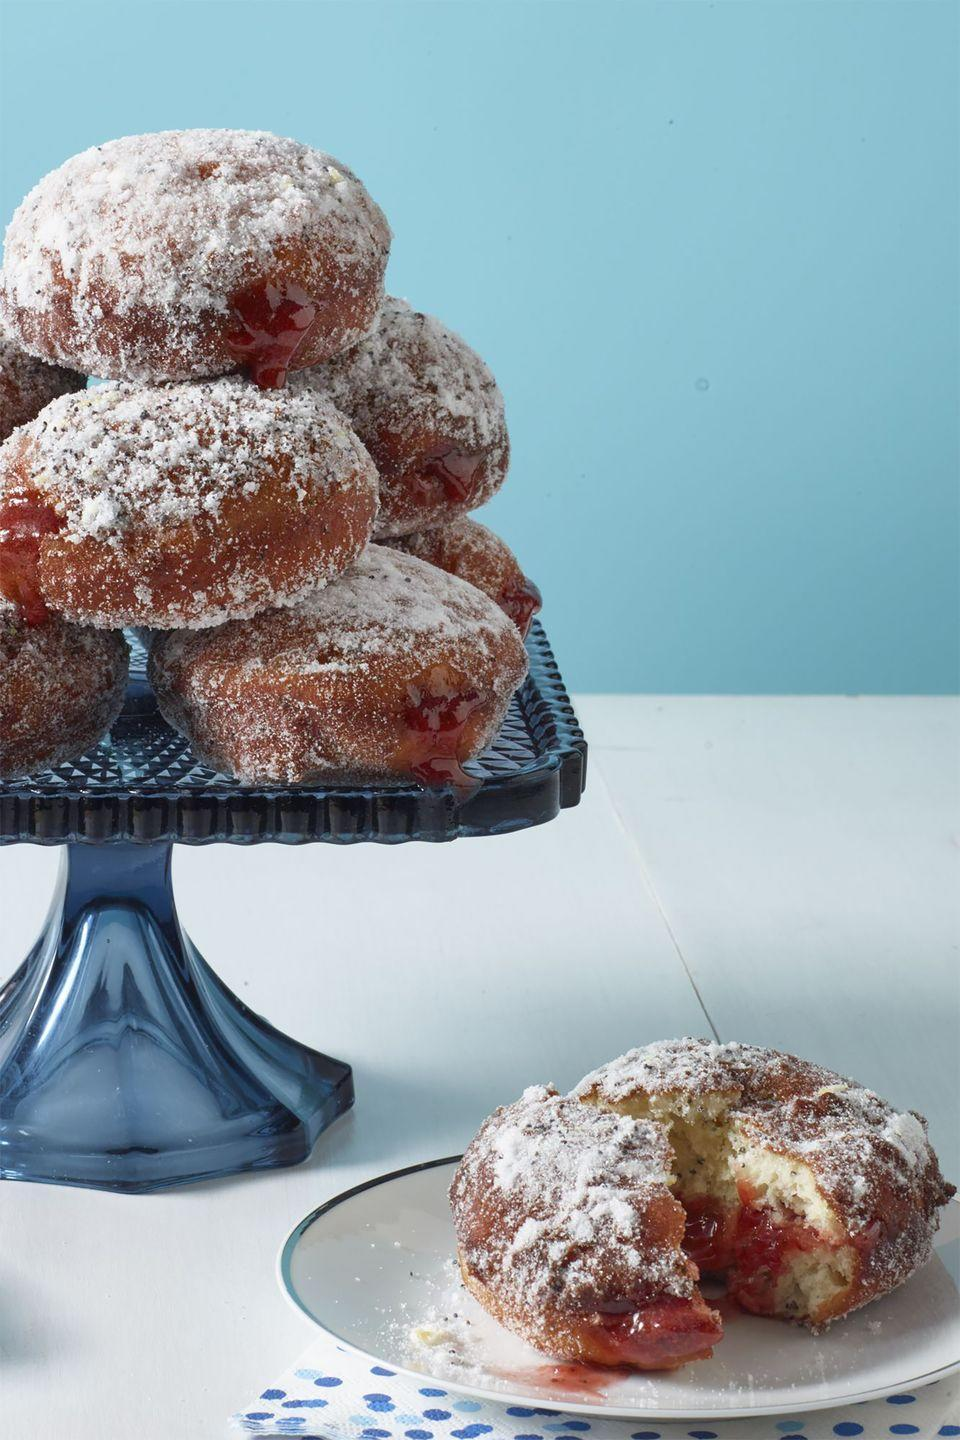 "<p>These jelly-filled donuts take just over an hour to make, so whip up a batch on Sunday and it'll feel like a morning treat all week. </p><p><a href=""https://www.womansday.com/food-recipes/food-drinks/recipes/a60680/lemon-poppy-seed-jelly-doughnuts-recipe/"" rel=""nofollow noopener"" target=""_blank"" data-ylk=""slk:Get the Lemon Poppy Seed Jelly Doughnuts recipe."" class=""link rapid-noclick-resp""><em>Get the Lemon Poppy Seed Jelly Doughnuts recipe.</em></a></p>"